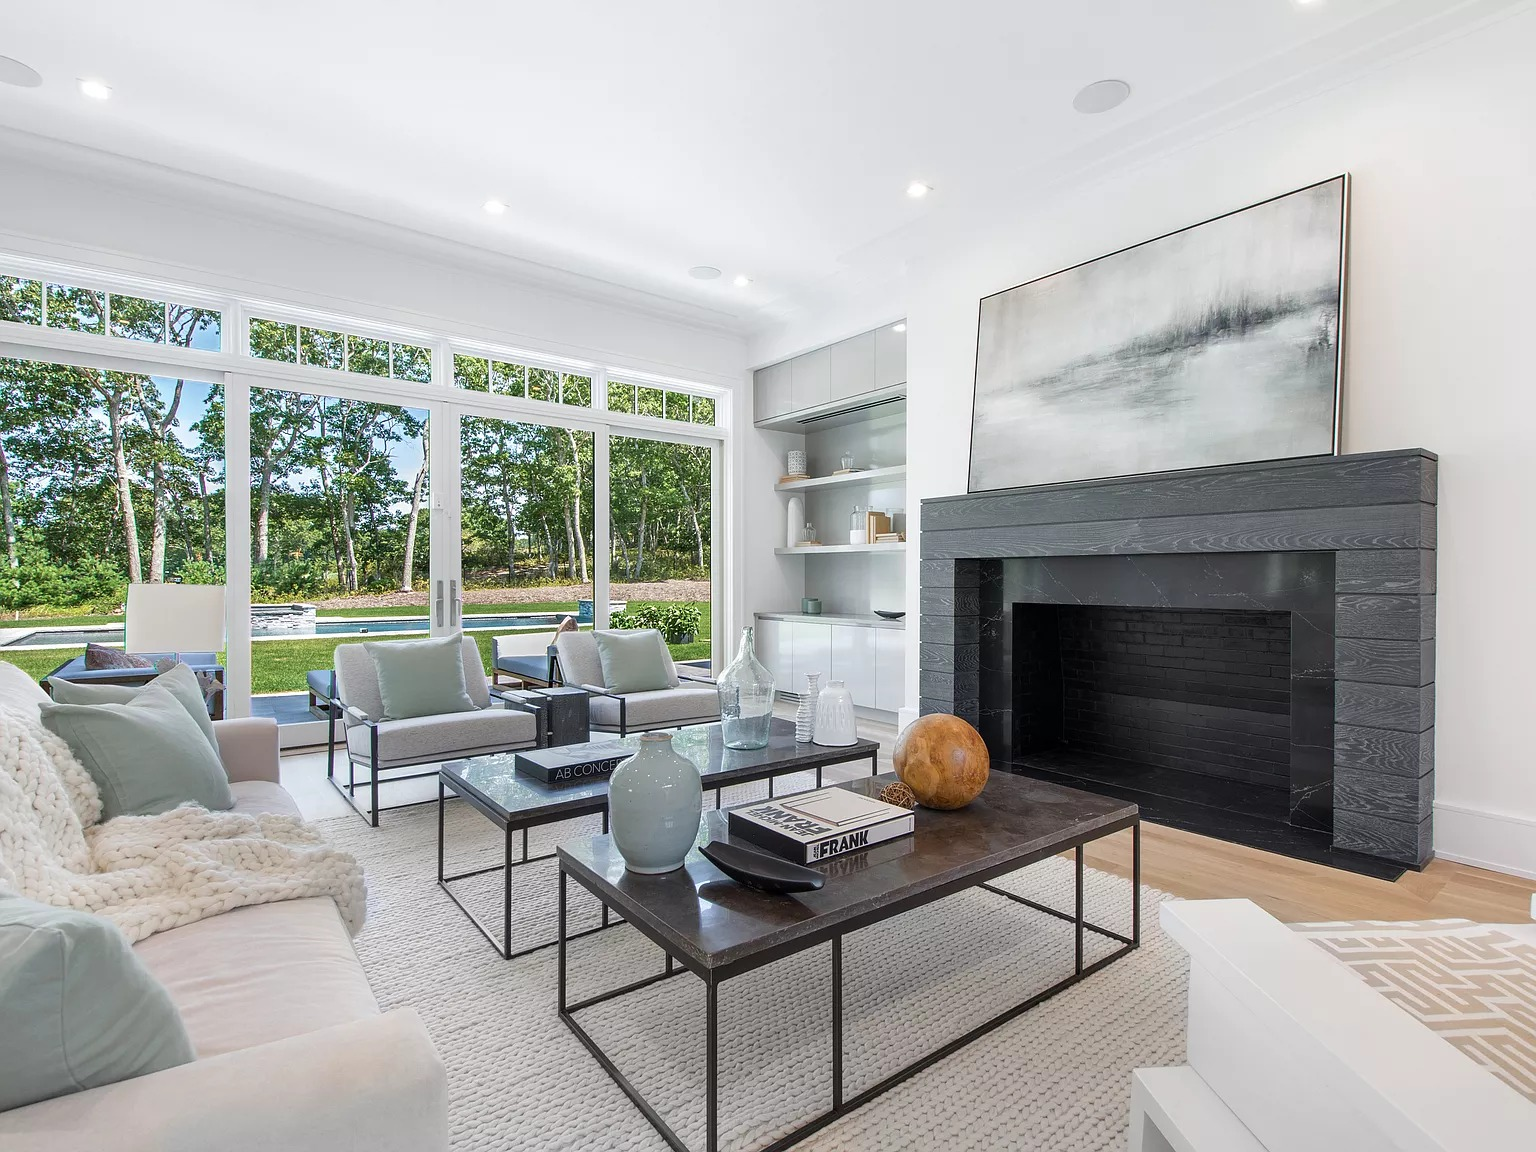 18 Fairway Ct, Sag Harbor, NY 11963 - $5,950,000 home for sale, house images, photos and pics gallery